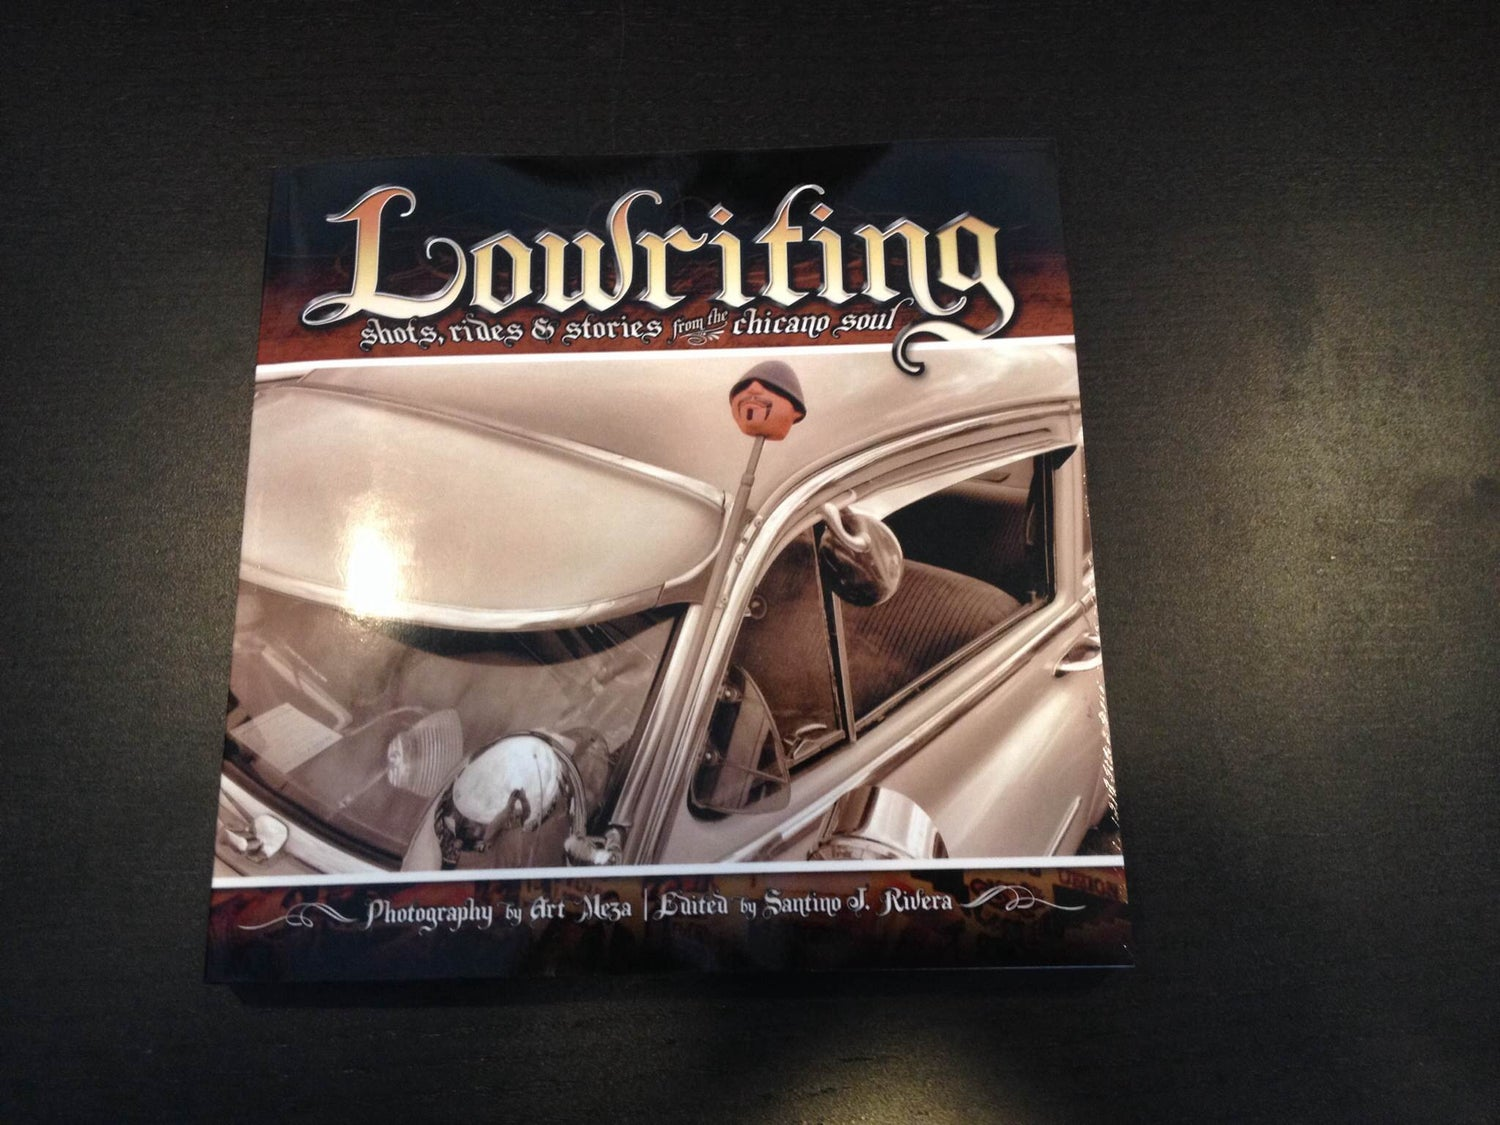 Image of Lowriting: Shots, Rides & Stories from the Chicano Soul